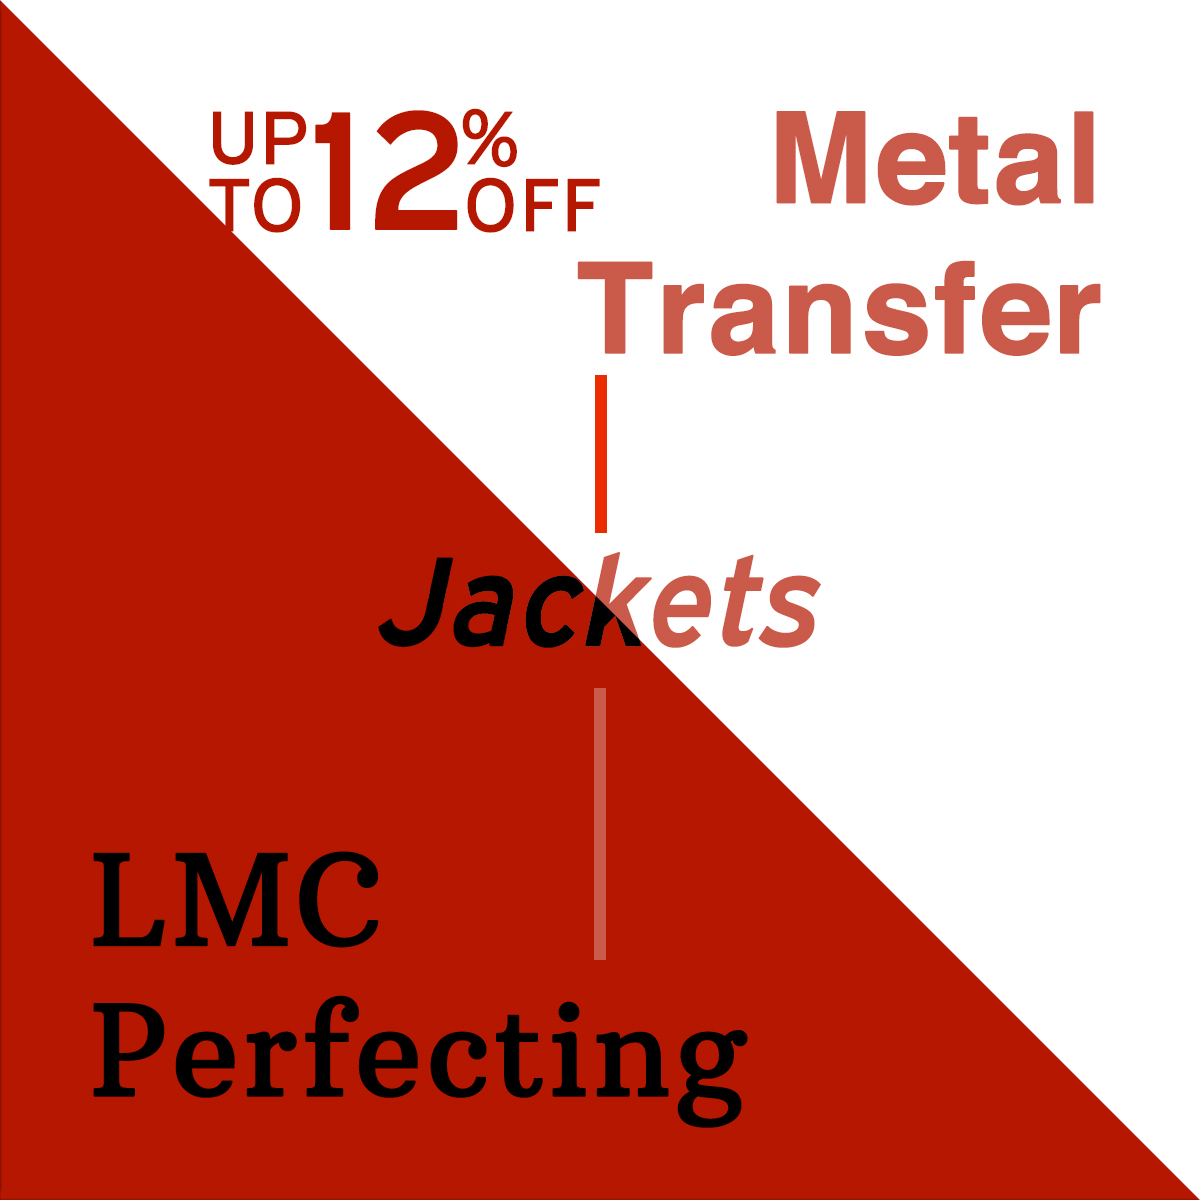 Get Up to 12% OFF Metal Transfer & LMC Perfecting Jackets